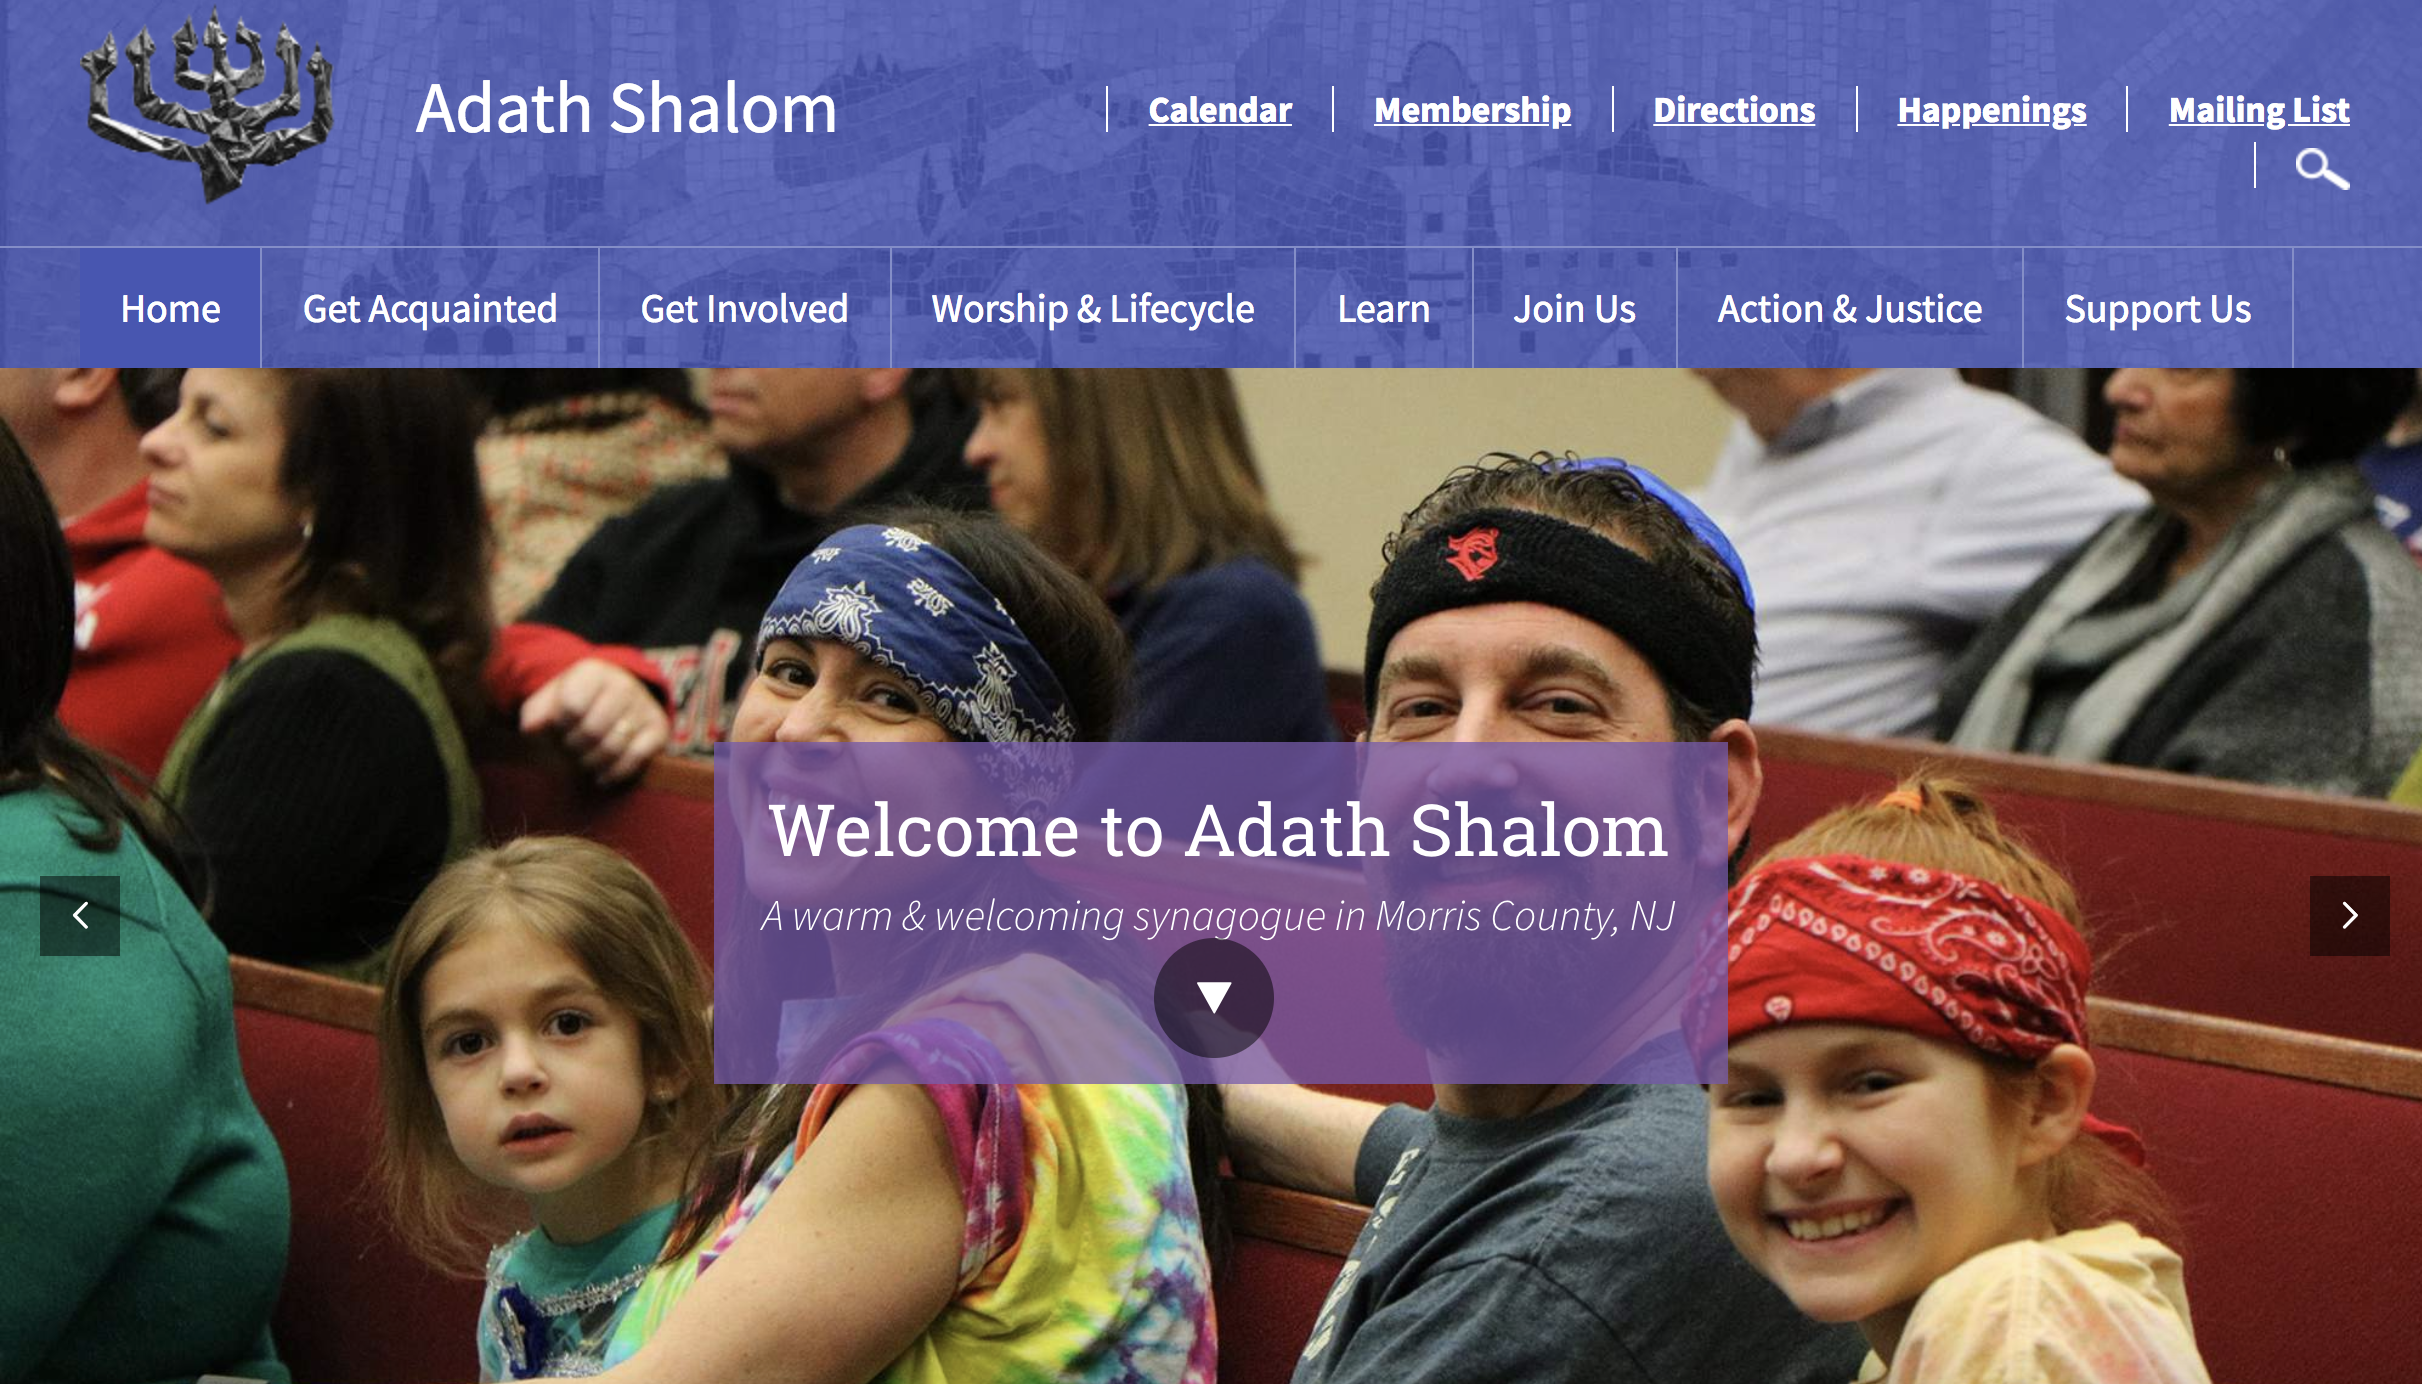 Adath Shalom homepage